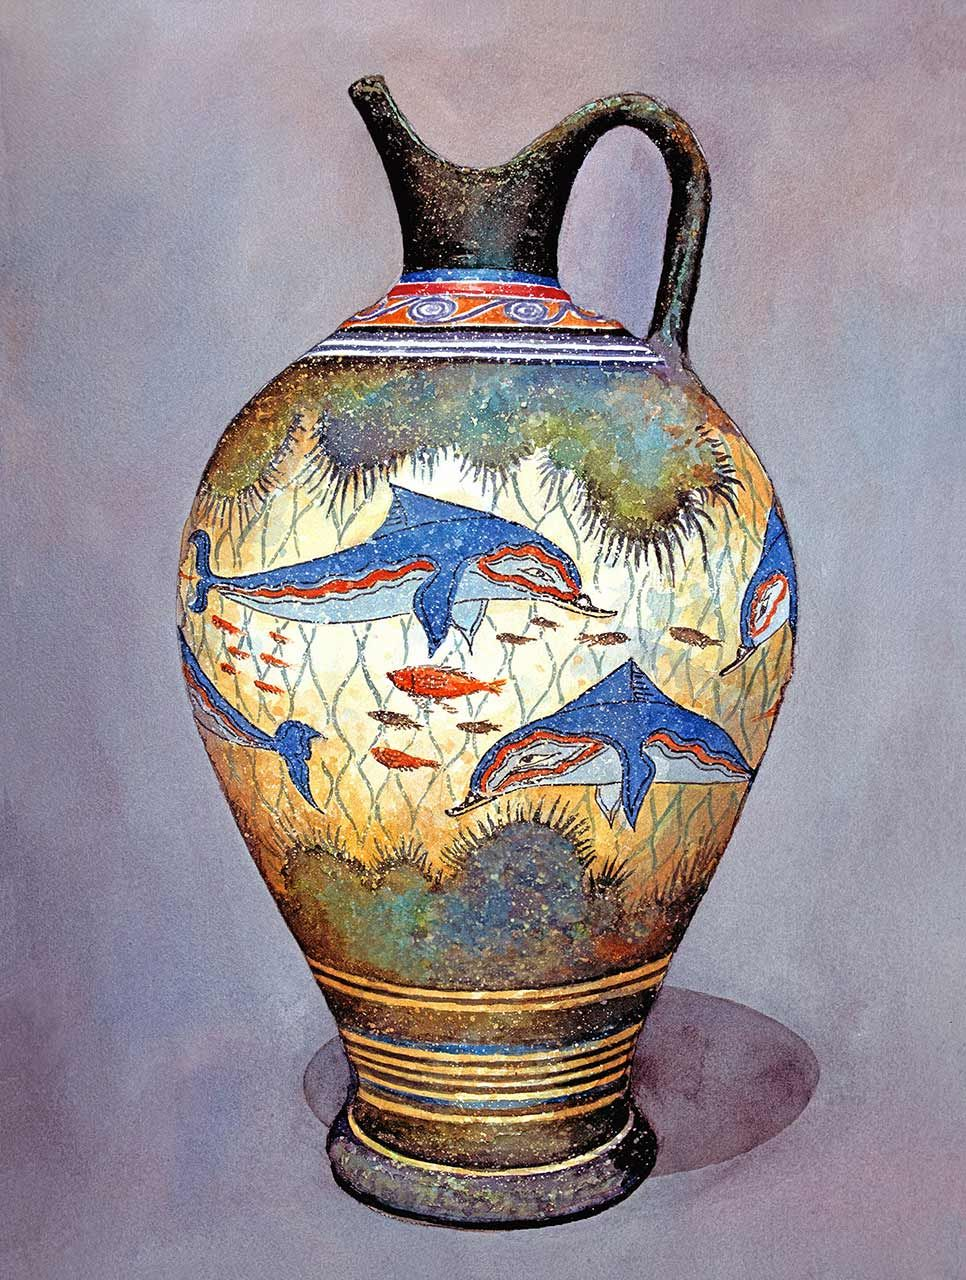 Minoan Urn 2 Colourful Dolphins Coral And Fish Decorate This Urn It Is A Modern Day Replica